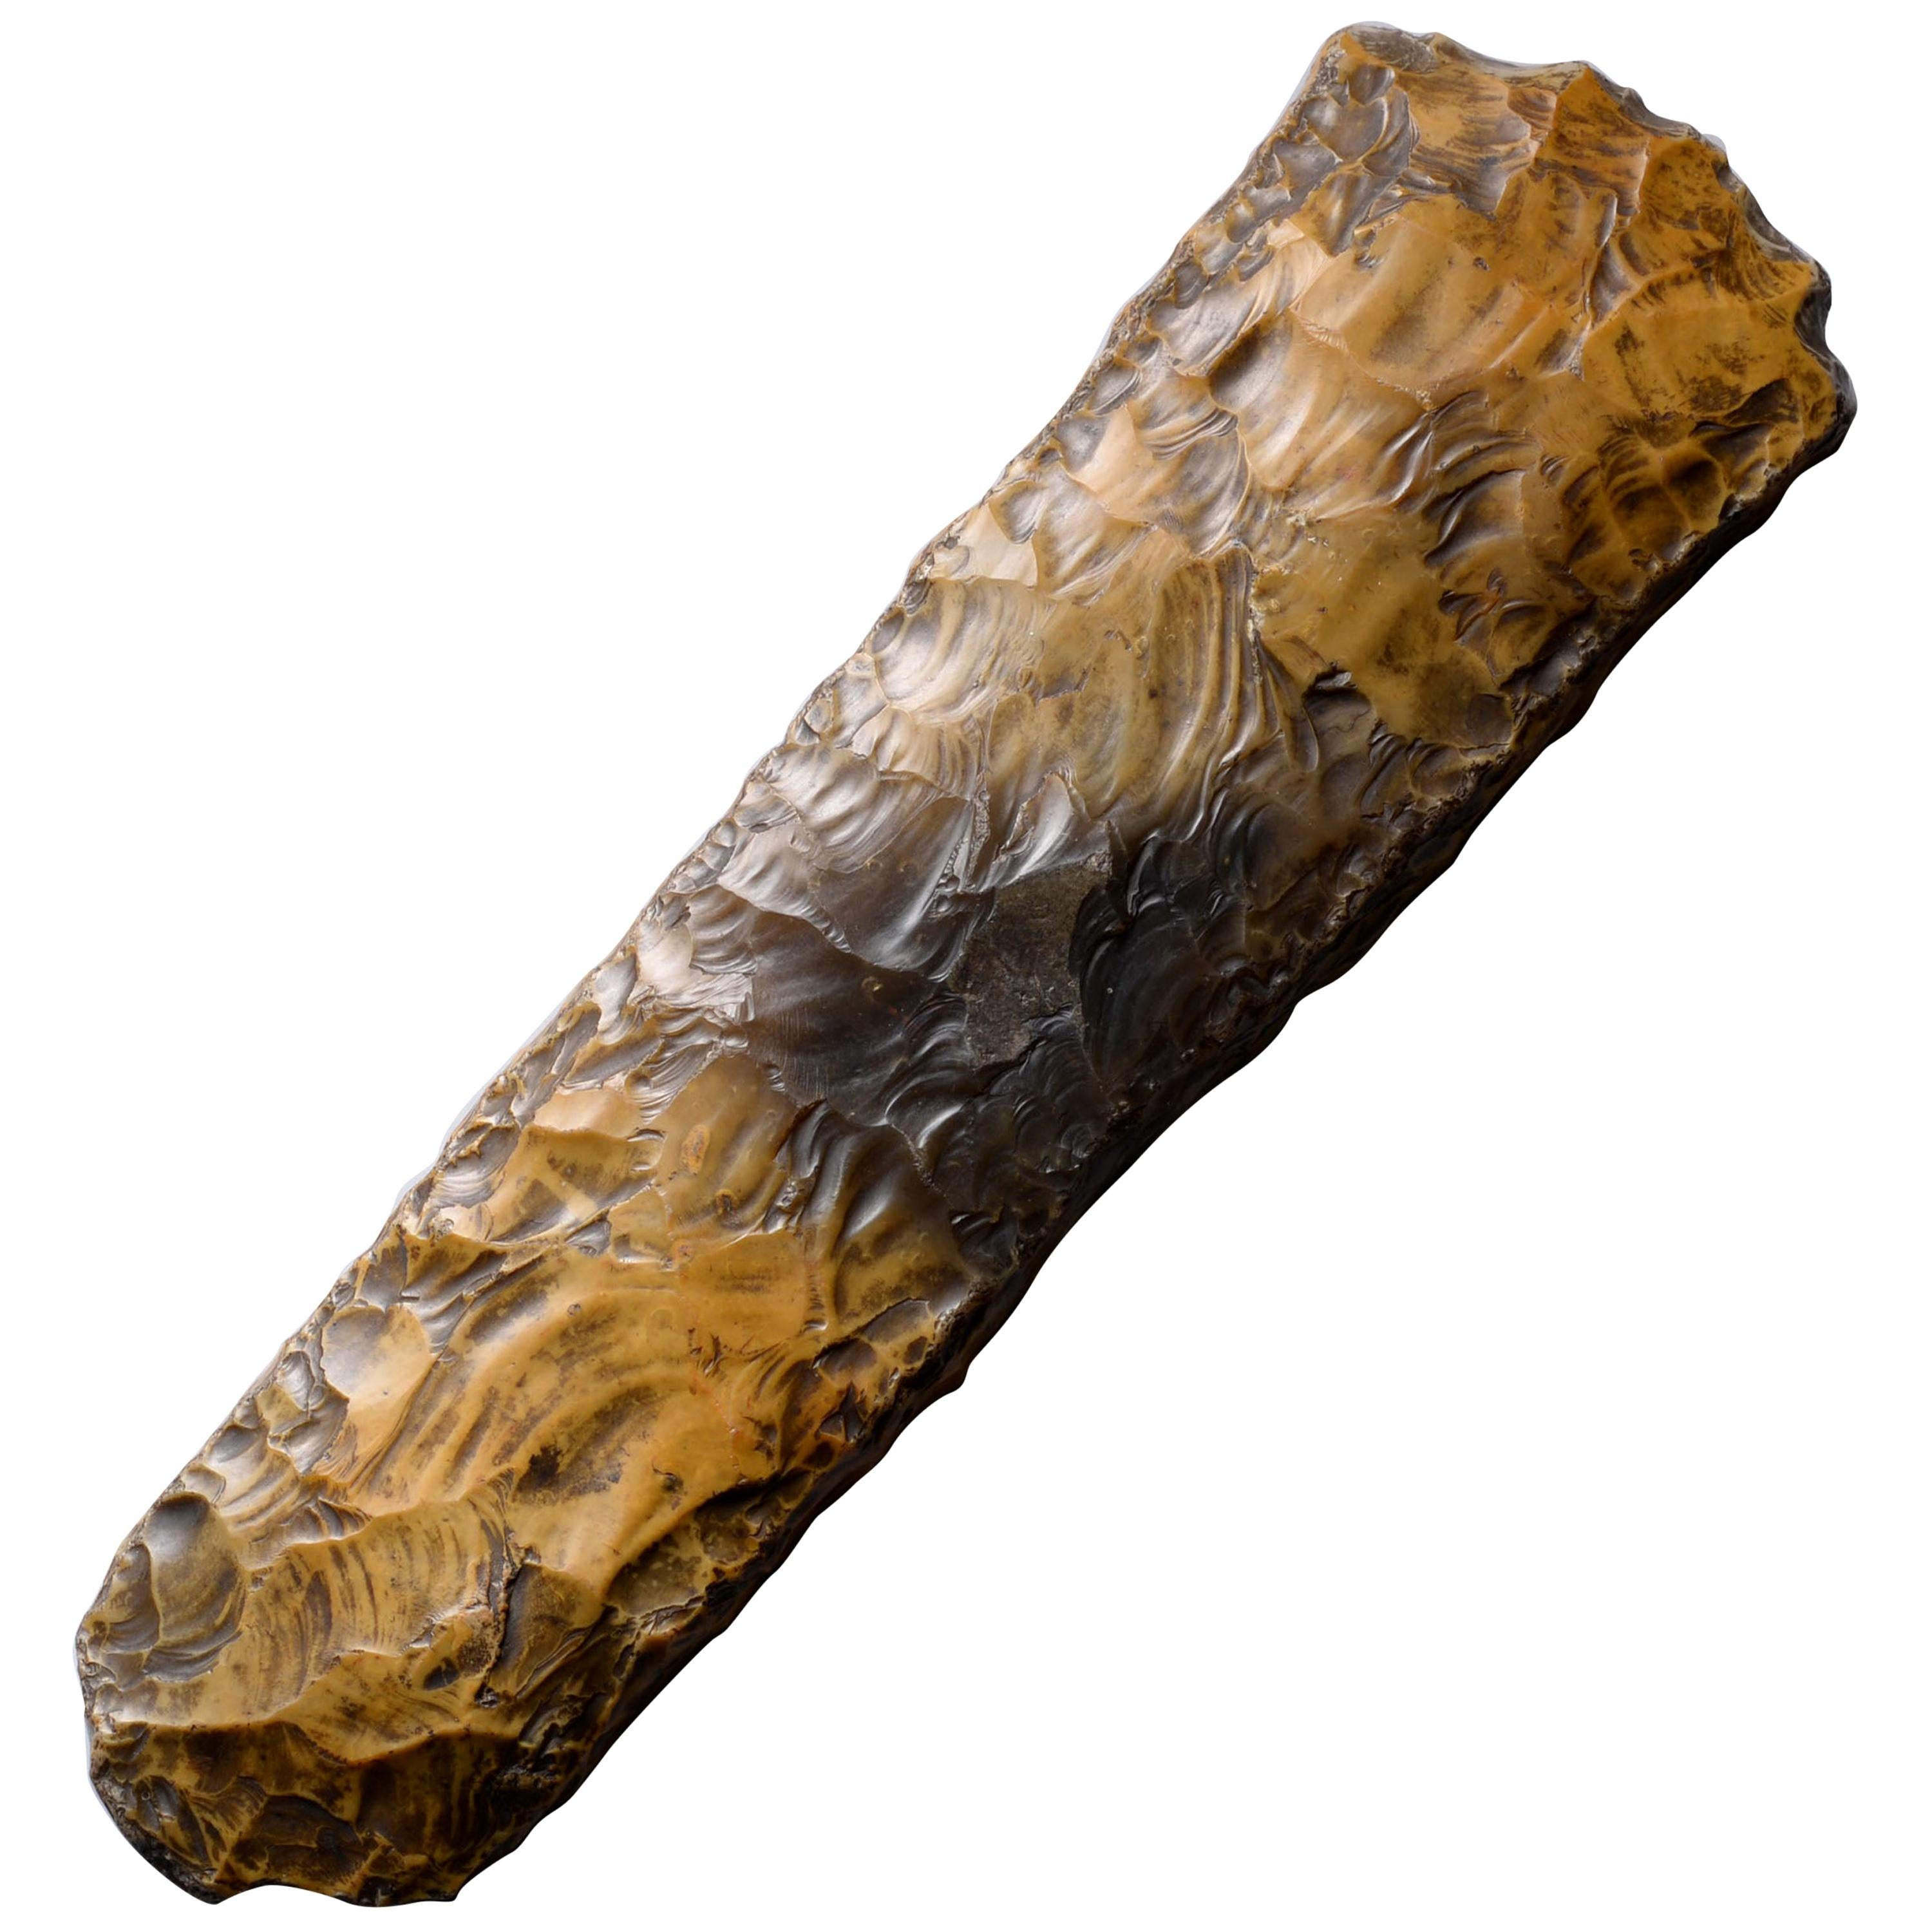 Large Neolithic Flint Axe from Sweden